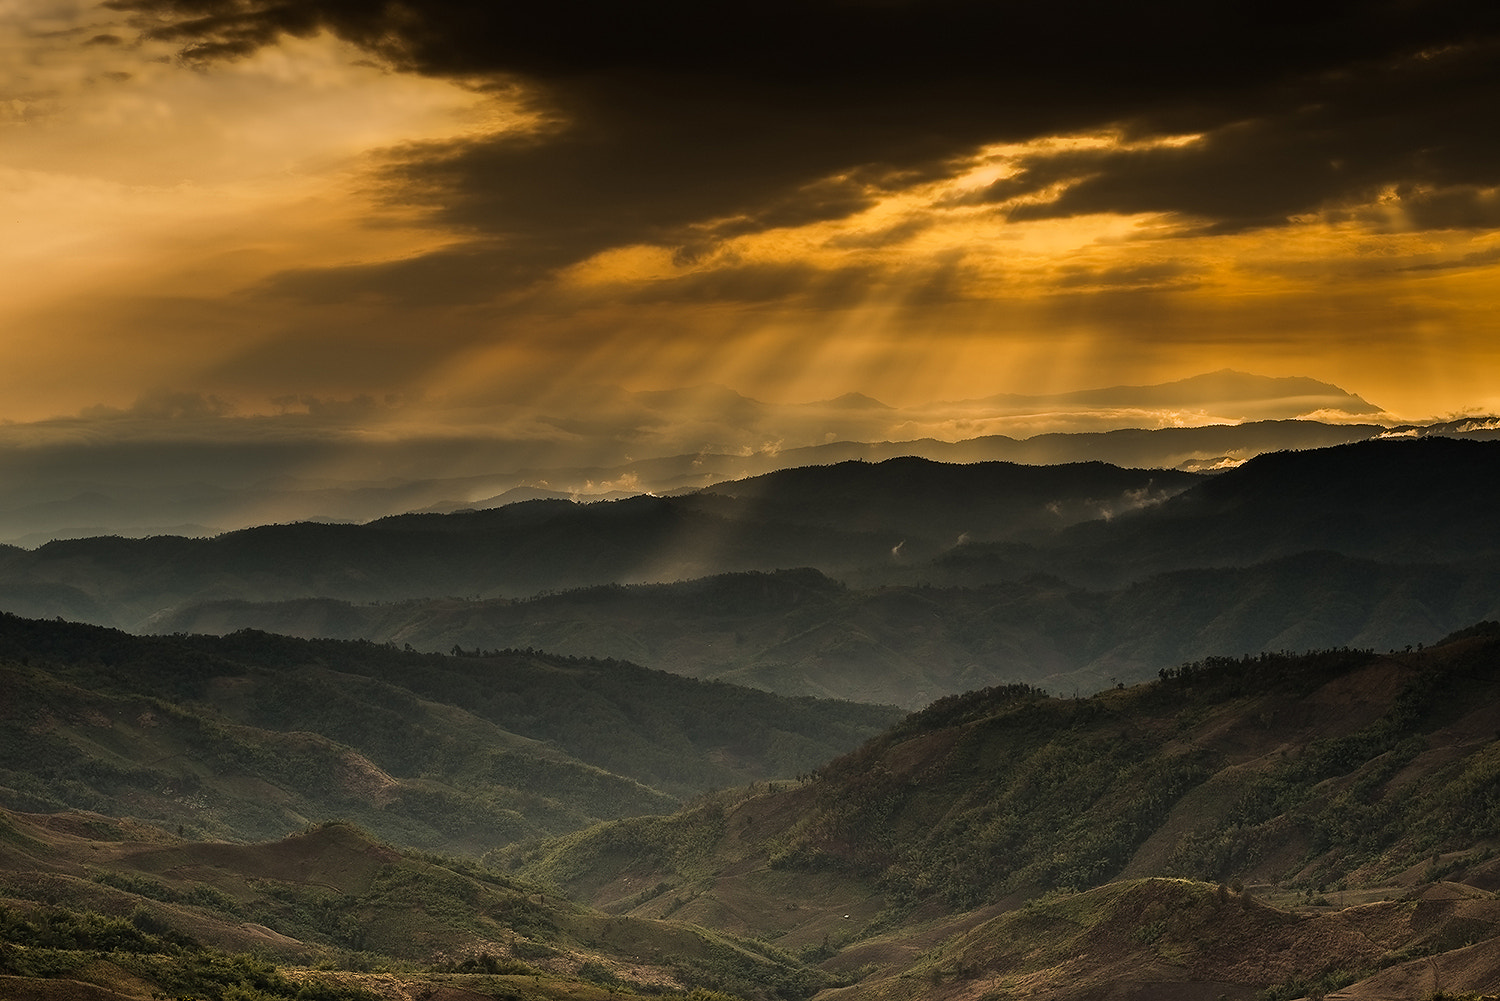 Photograph Doi Chang with Ray of Light by Vorravut Thanareukchai on 500px